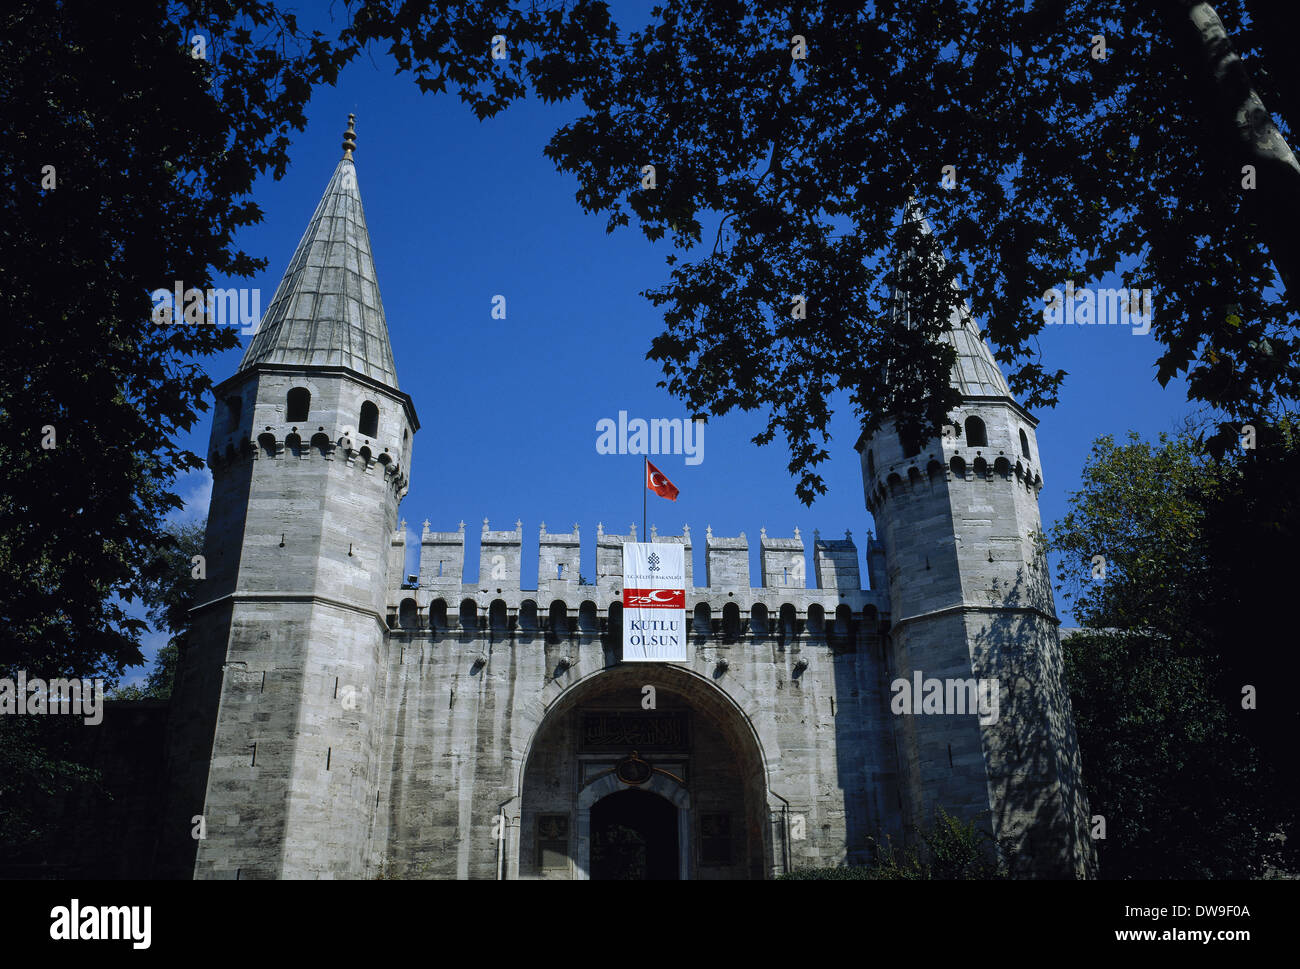 Turkey. Istanbul. Ortakapi Gate (Middle Gate). Access to Topkapi Palace. Built in 1524 by Suleiman the Magnificent. - Stock Image